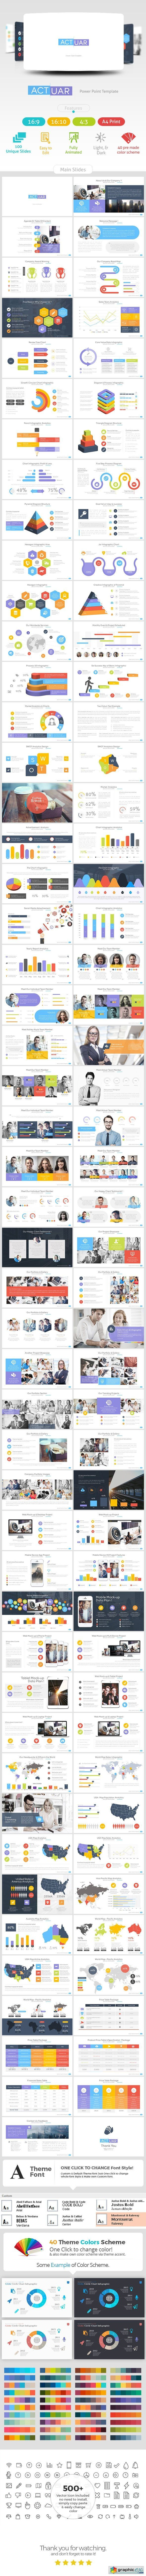 Actuar Power Point Presentation Template